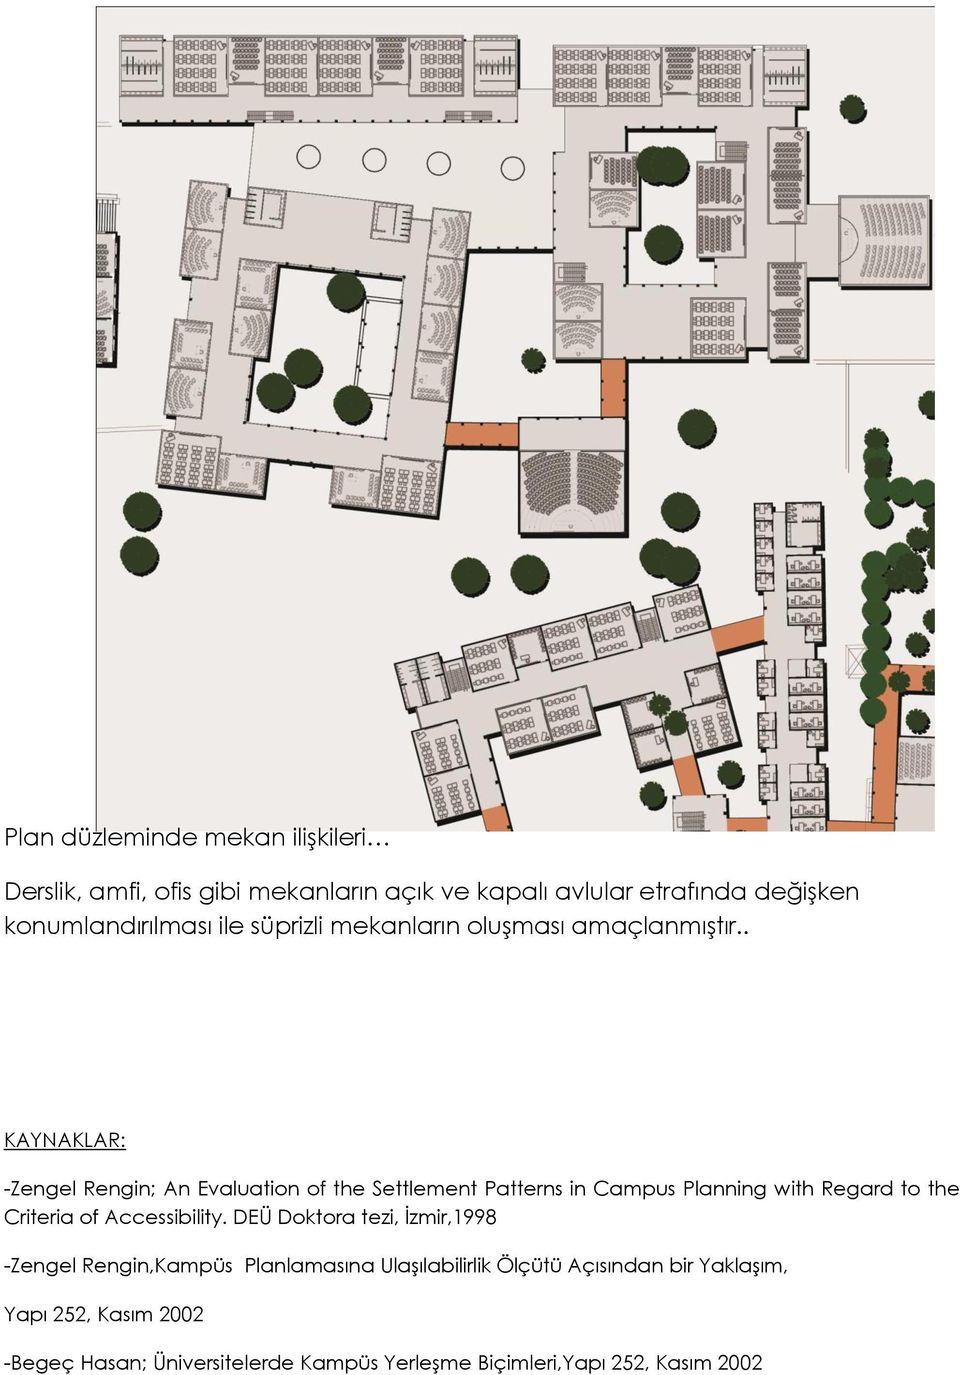 . KAYNAKLAR: -Zengel Rengin; An Evaluation of the Settlement Patterns in Campus Planning with Regard to the Criteria of